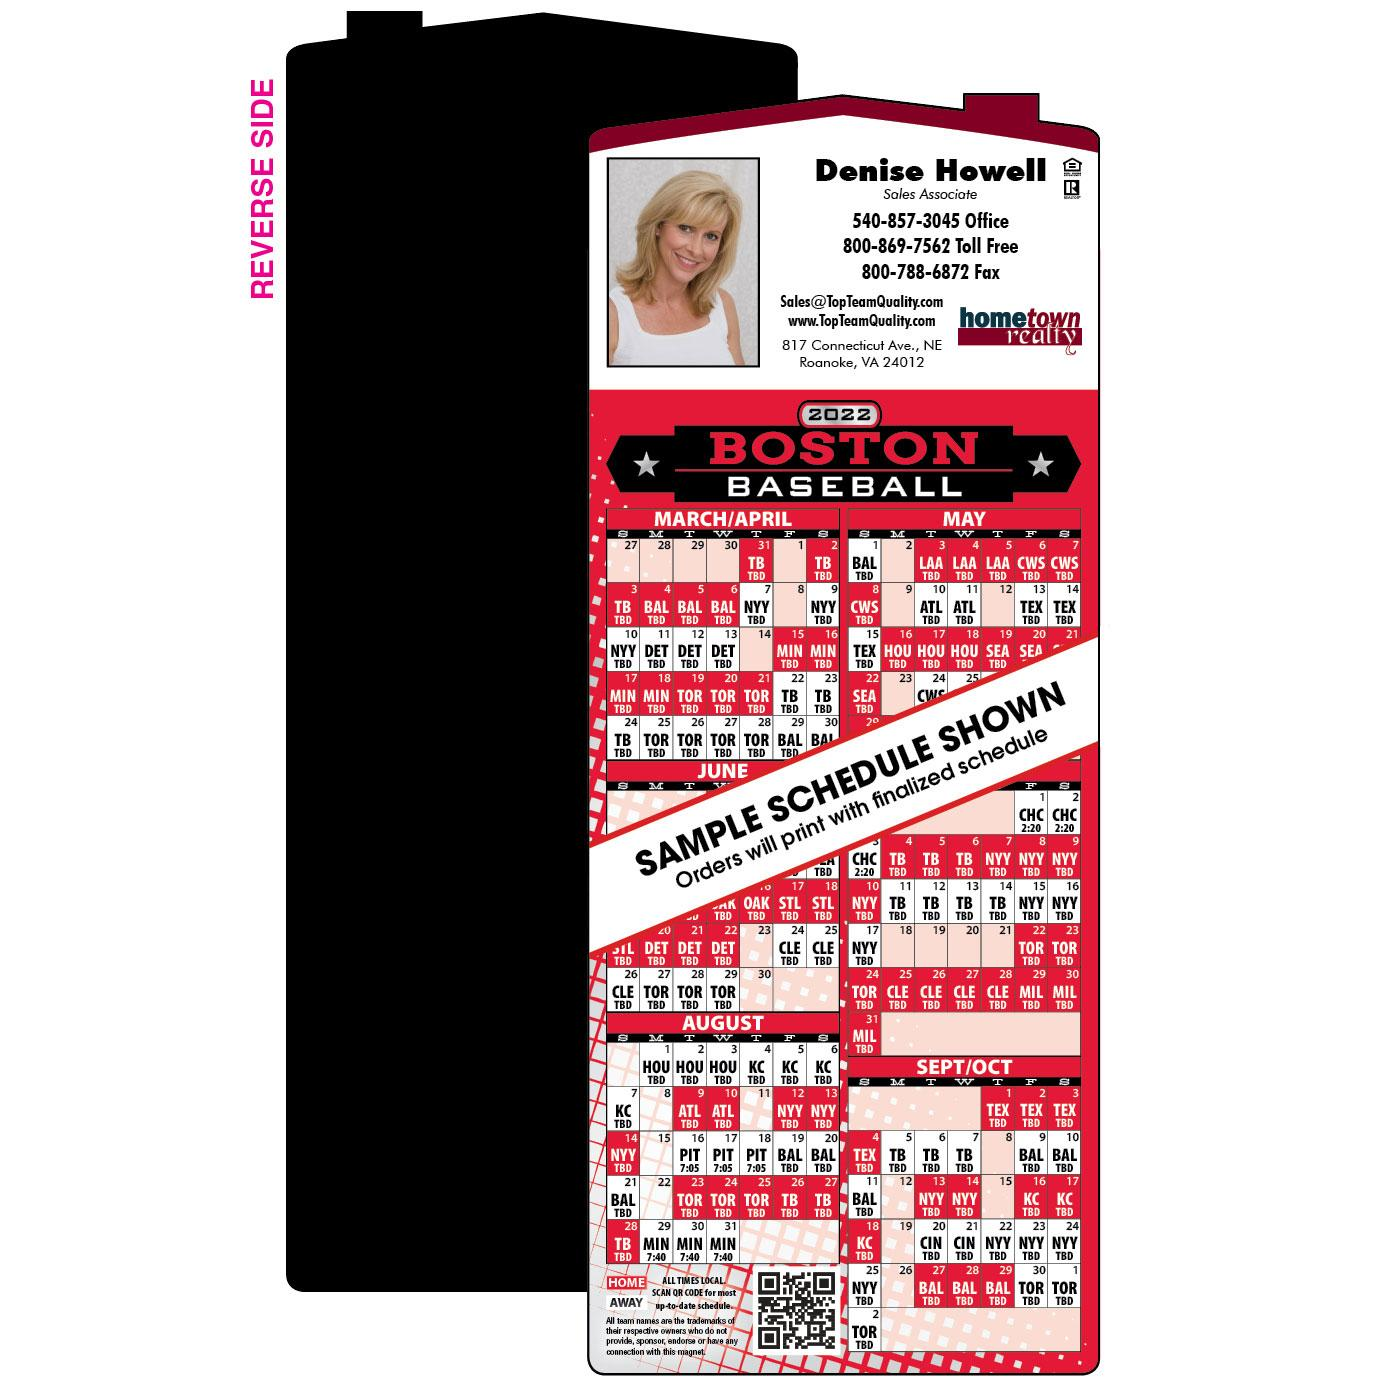 Baseball Schedule Marketing Magnet